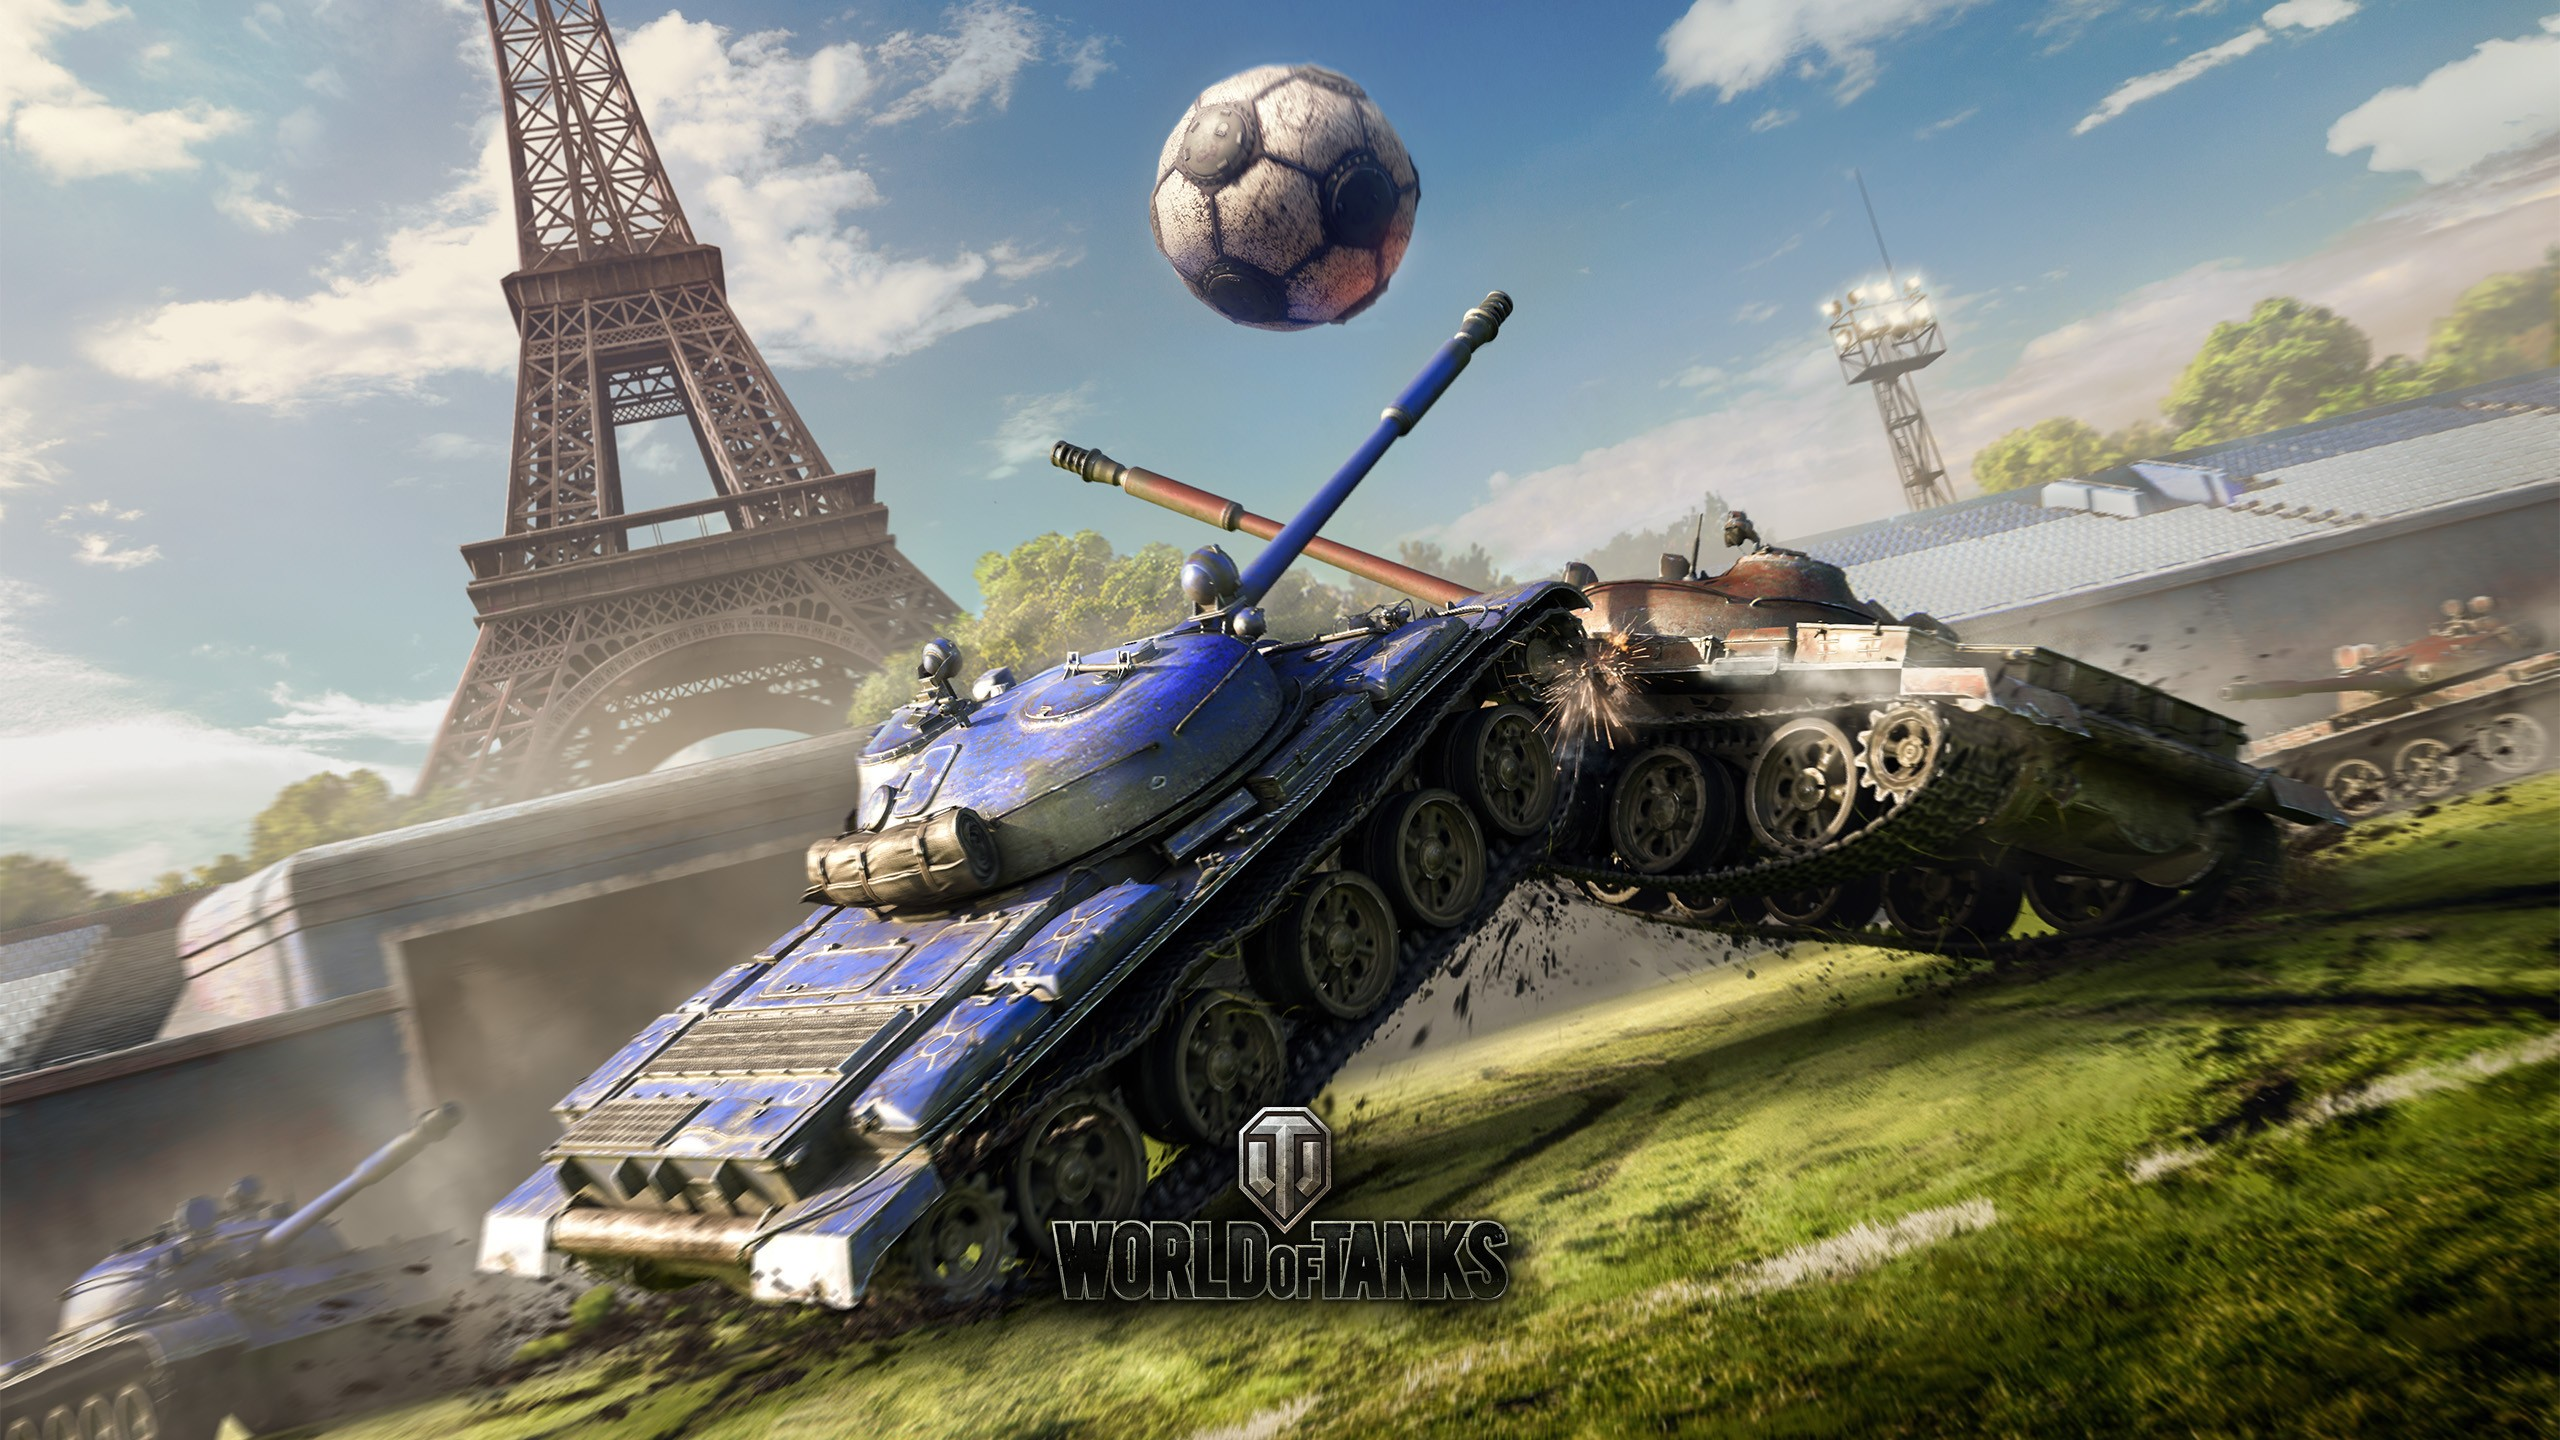 World Of Tanks Blitz Hd 4k 2560x1440 Wallpaper The Hot Desktop Wallpapers And Backgrounds For Your Pc And Mobile